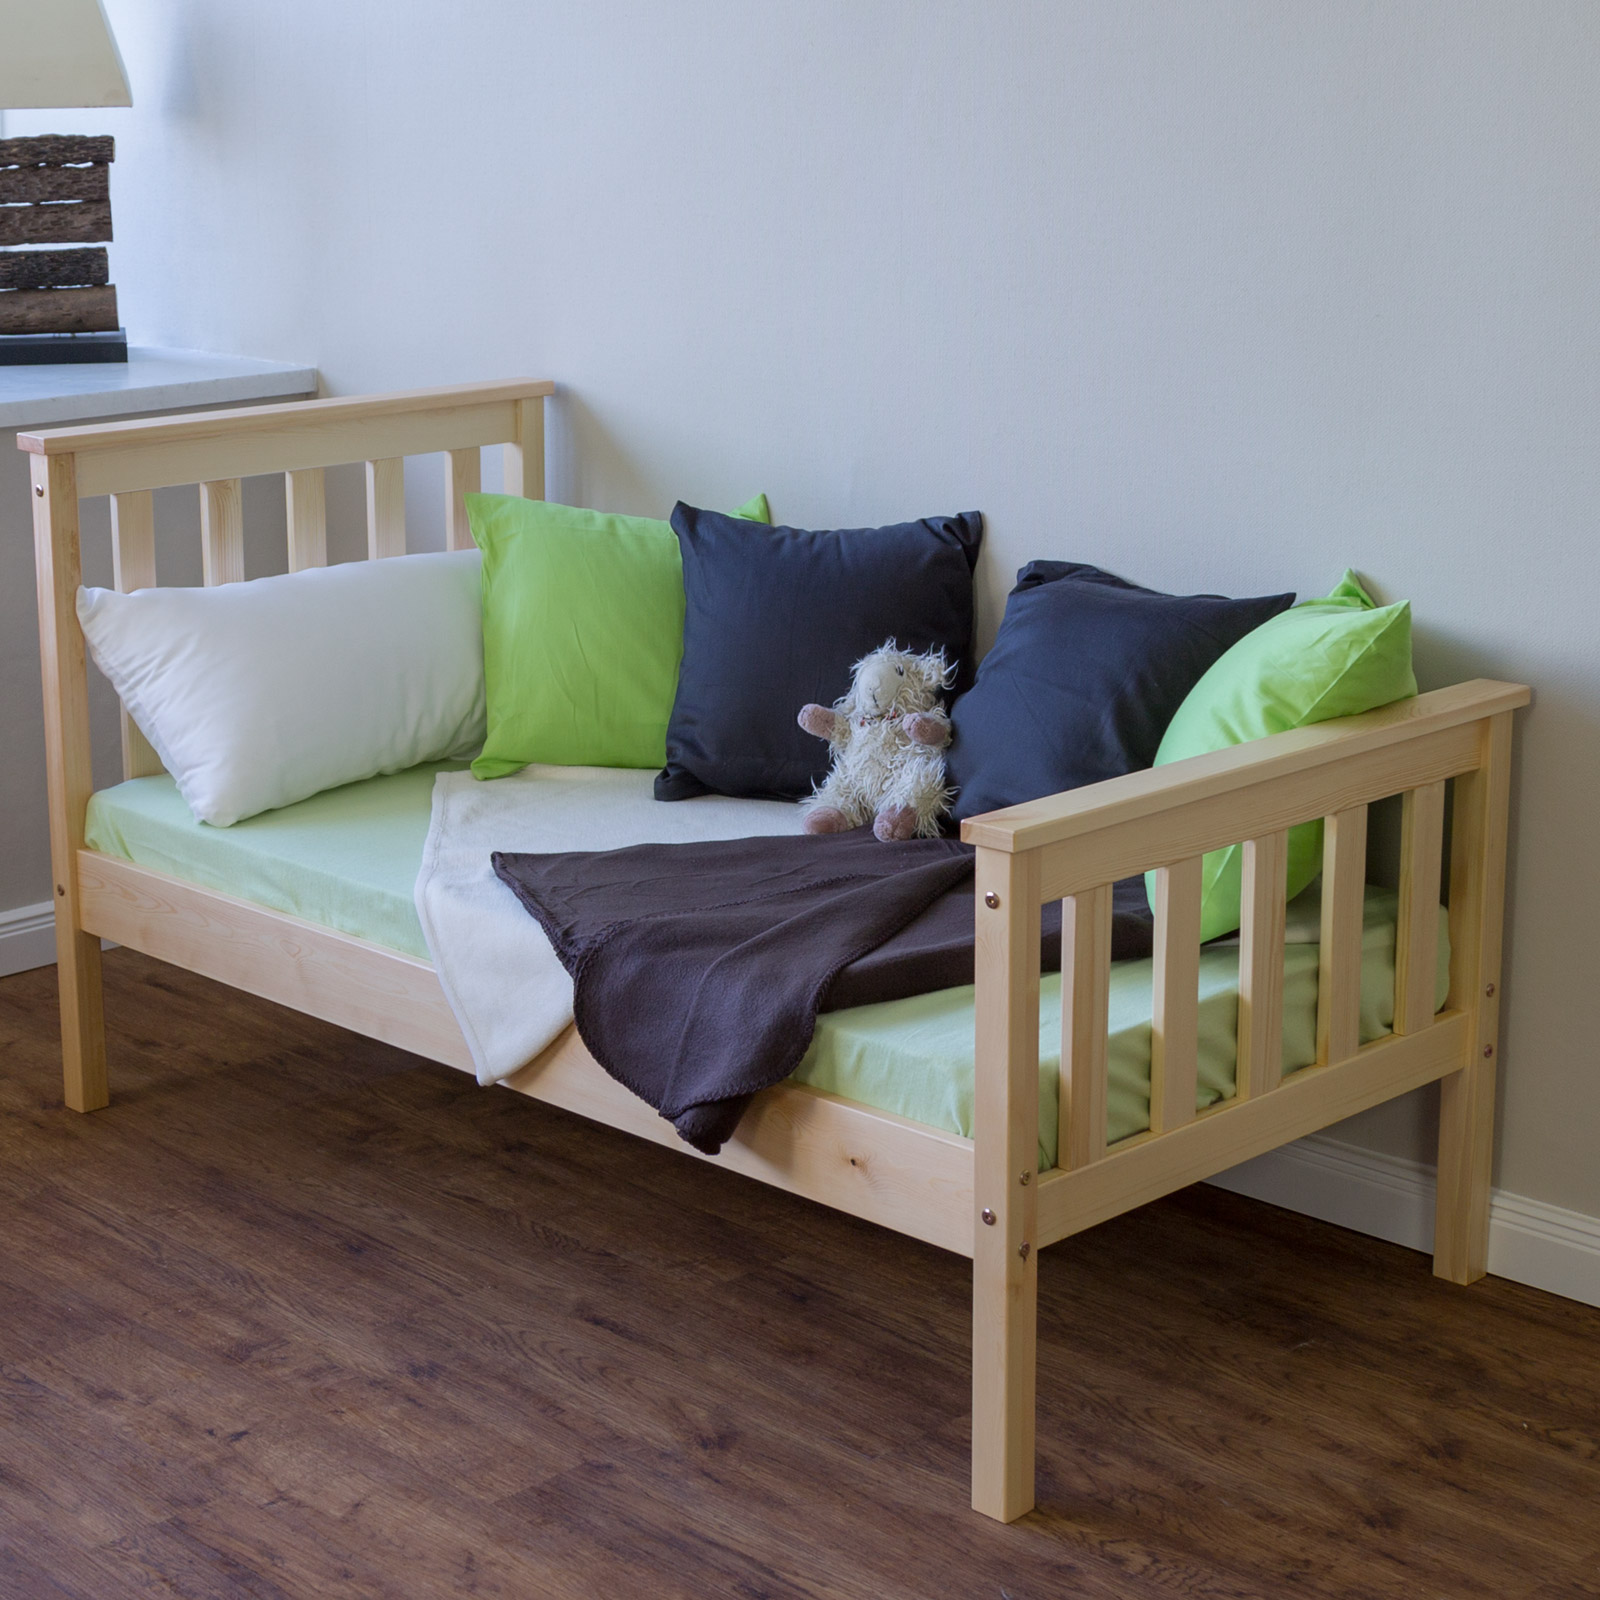 lit en bois bebe enfant 70x140 naturel jeunesse massif pin cadre sommier lattes ebay. Black Bedroom Furniture Sets. Home Design Ideas